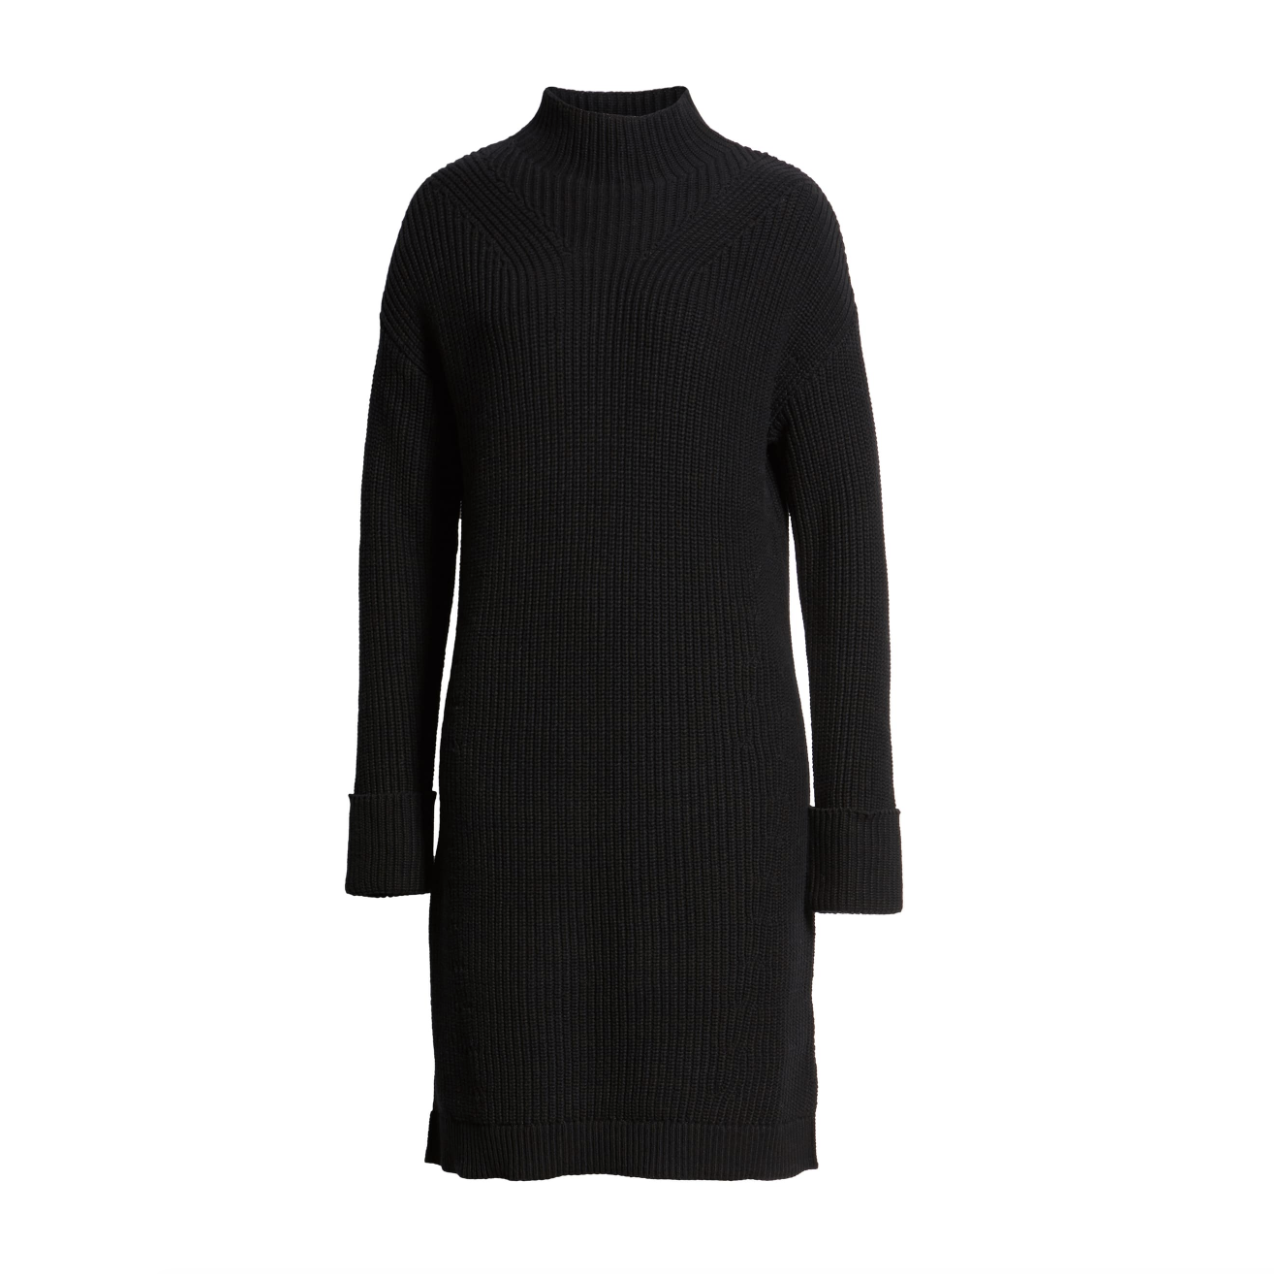 10 Sweater Dresses For Fall That You Can Wear to Work